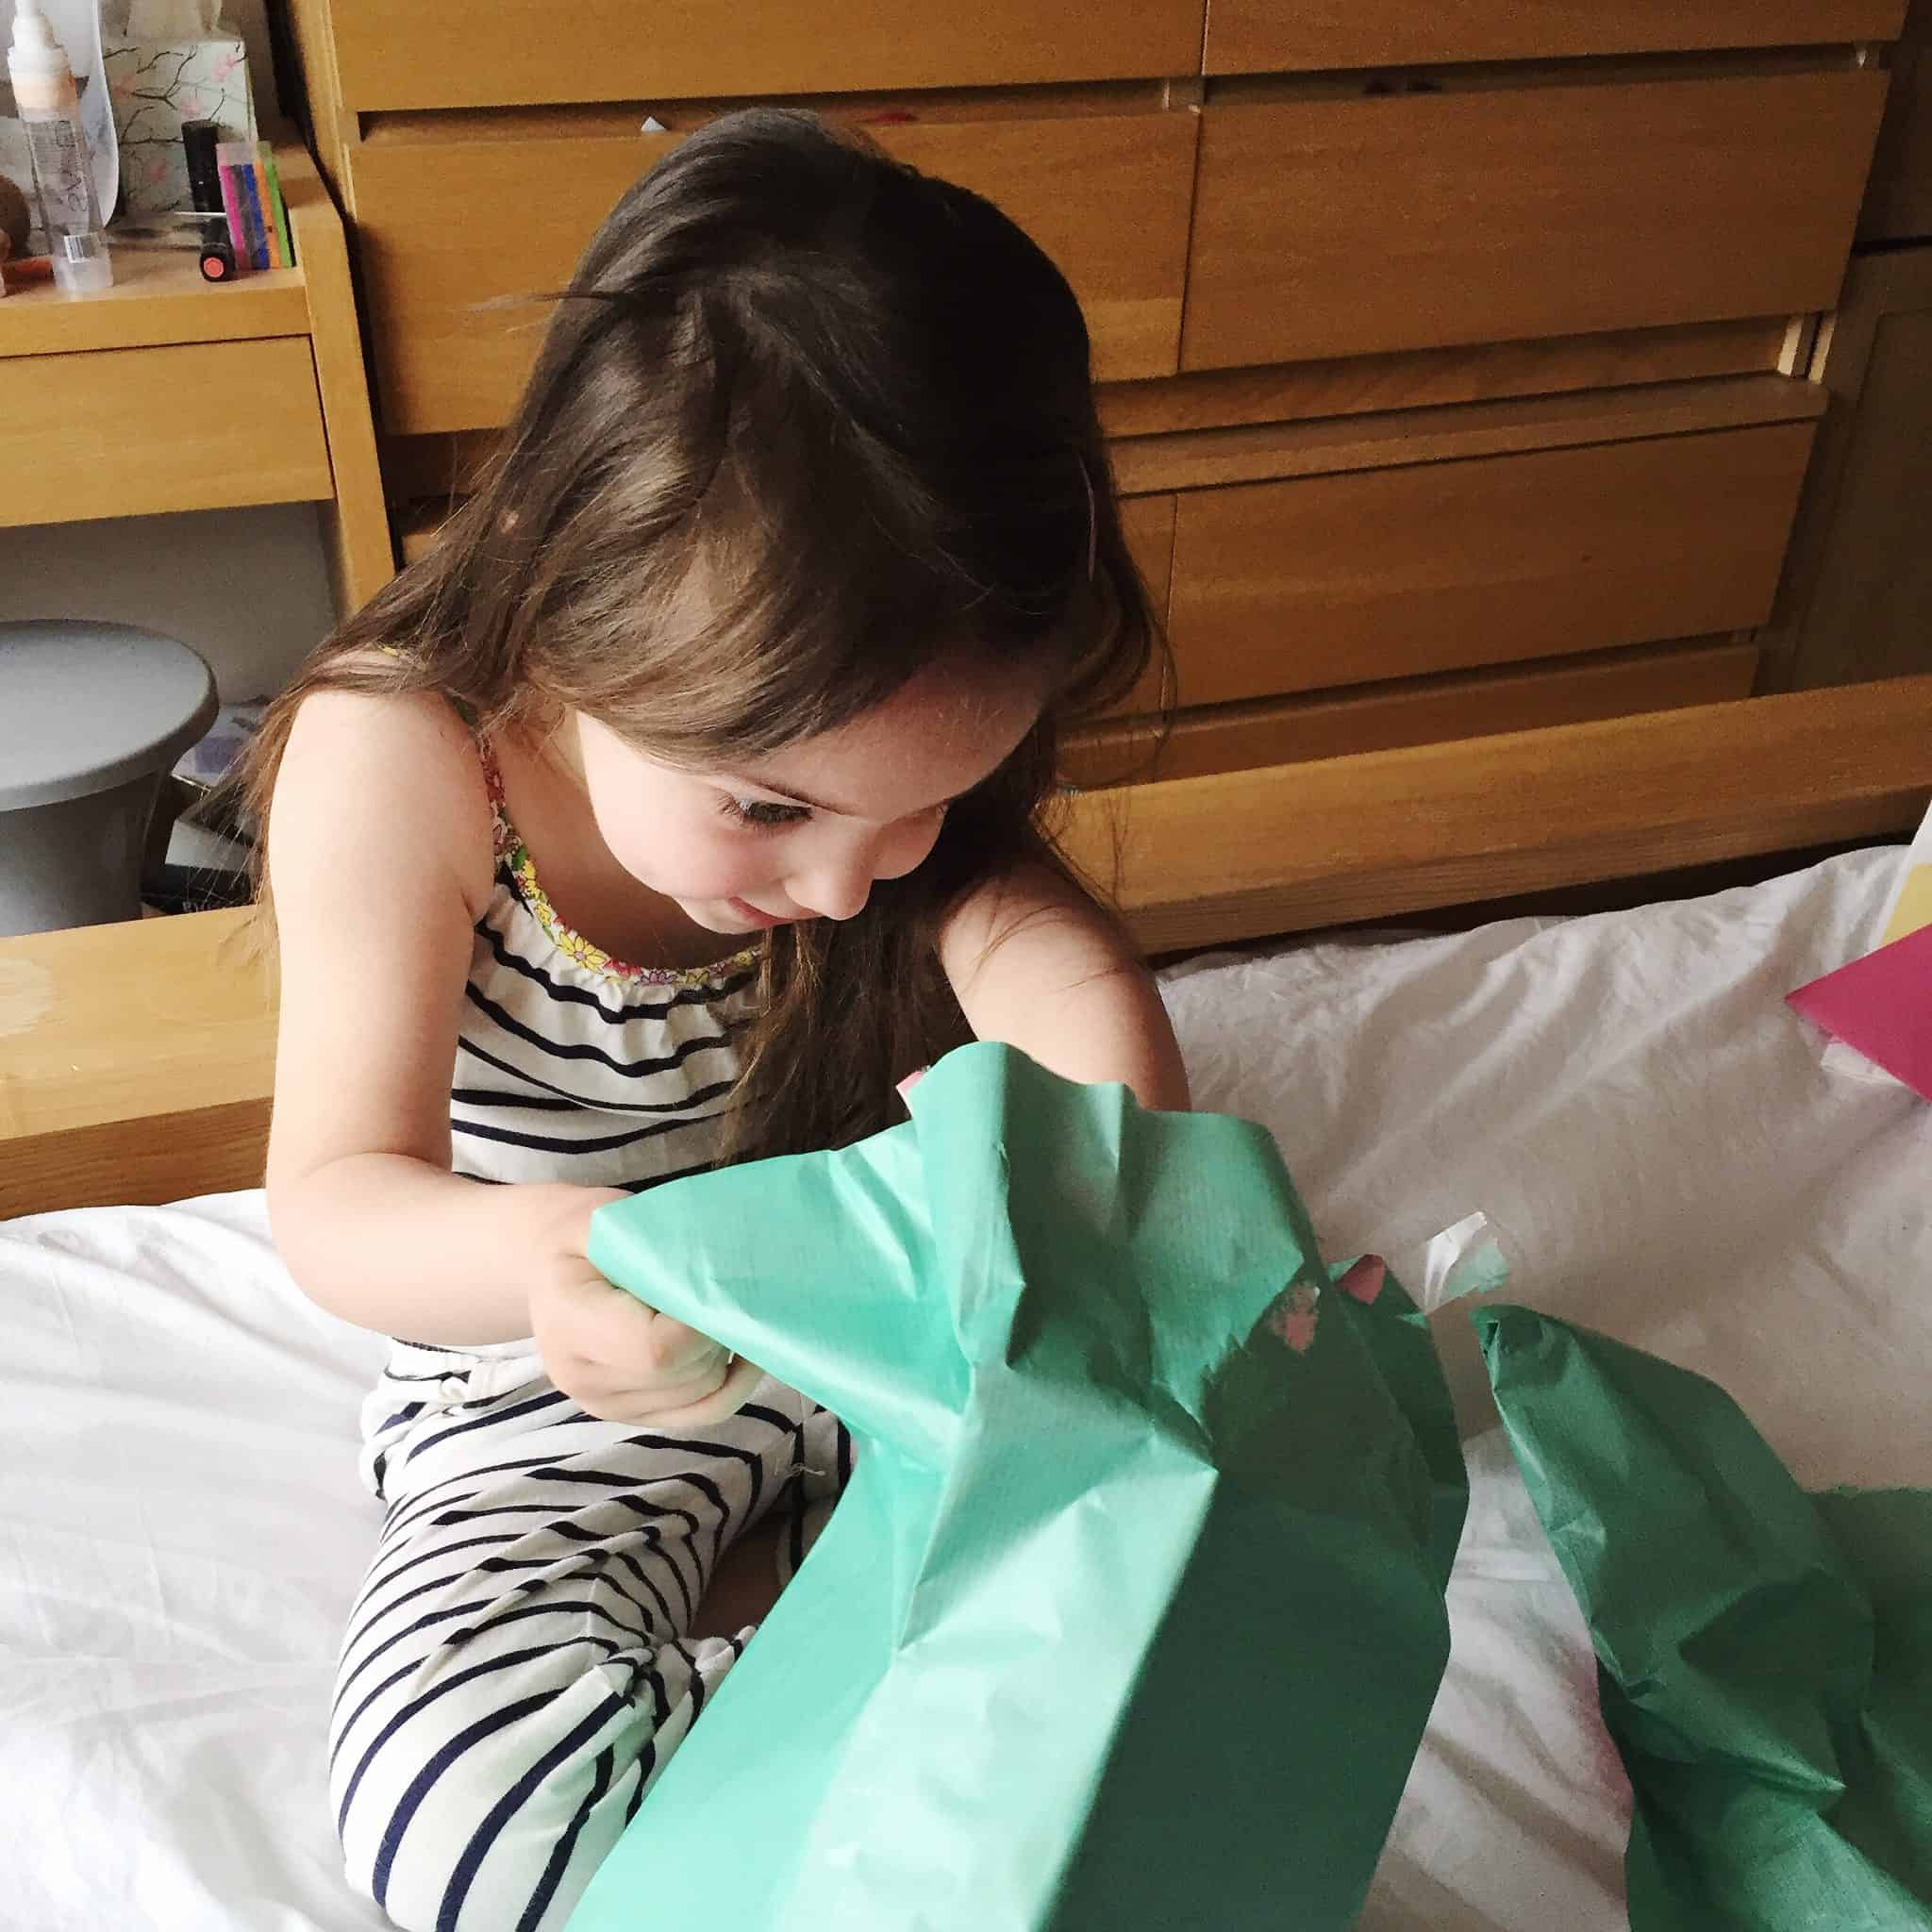 Thea on her 4th birthday opening presents